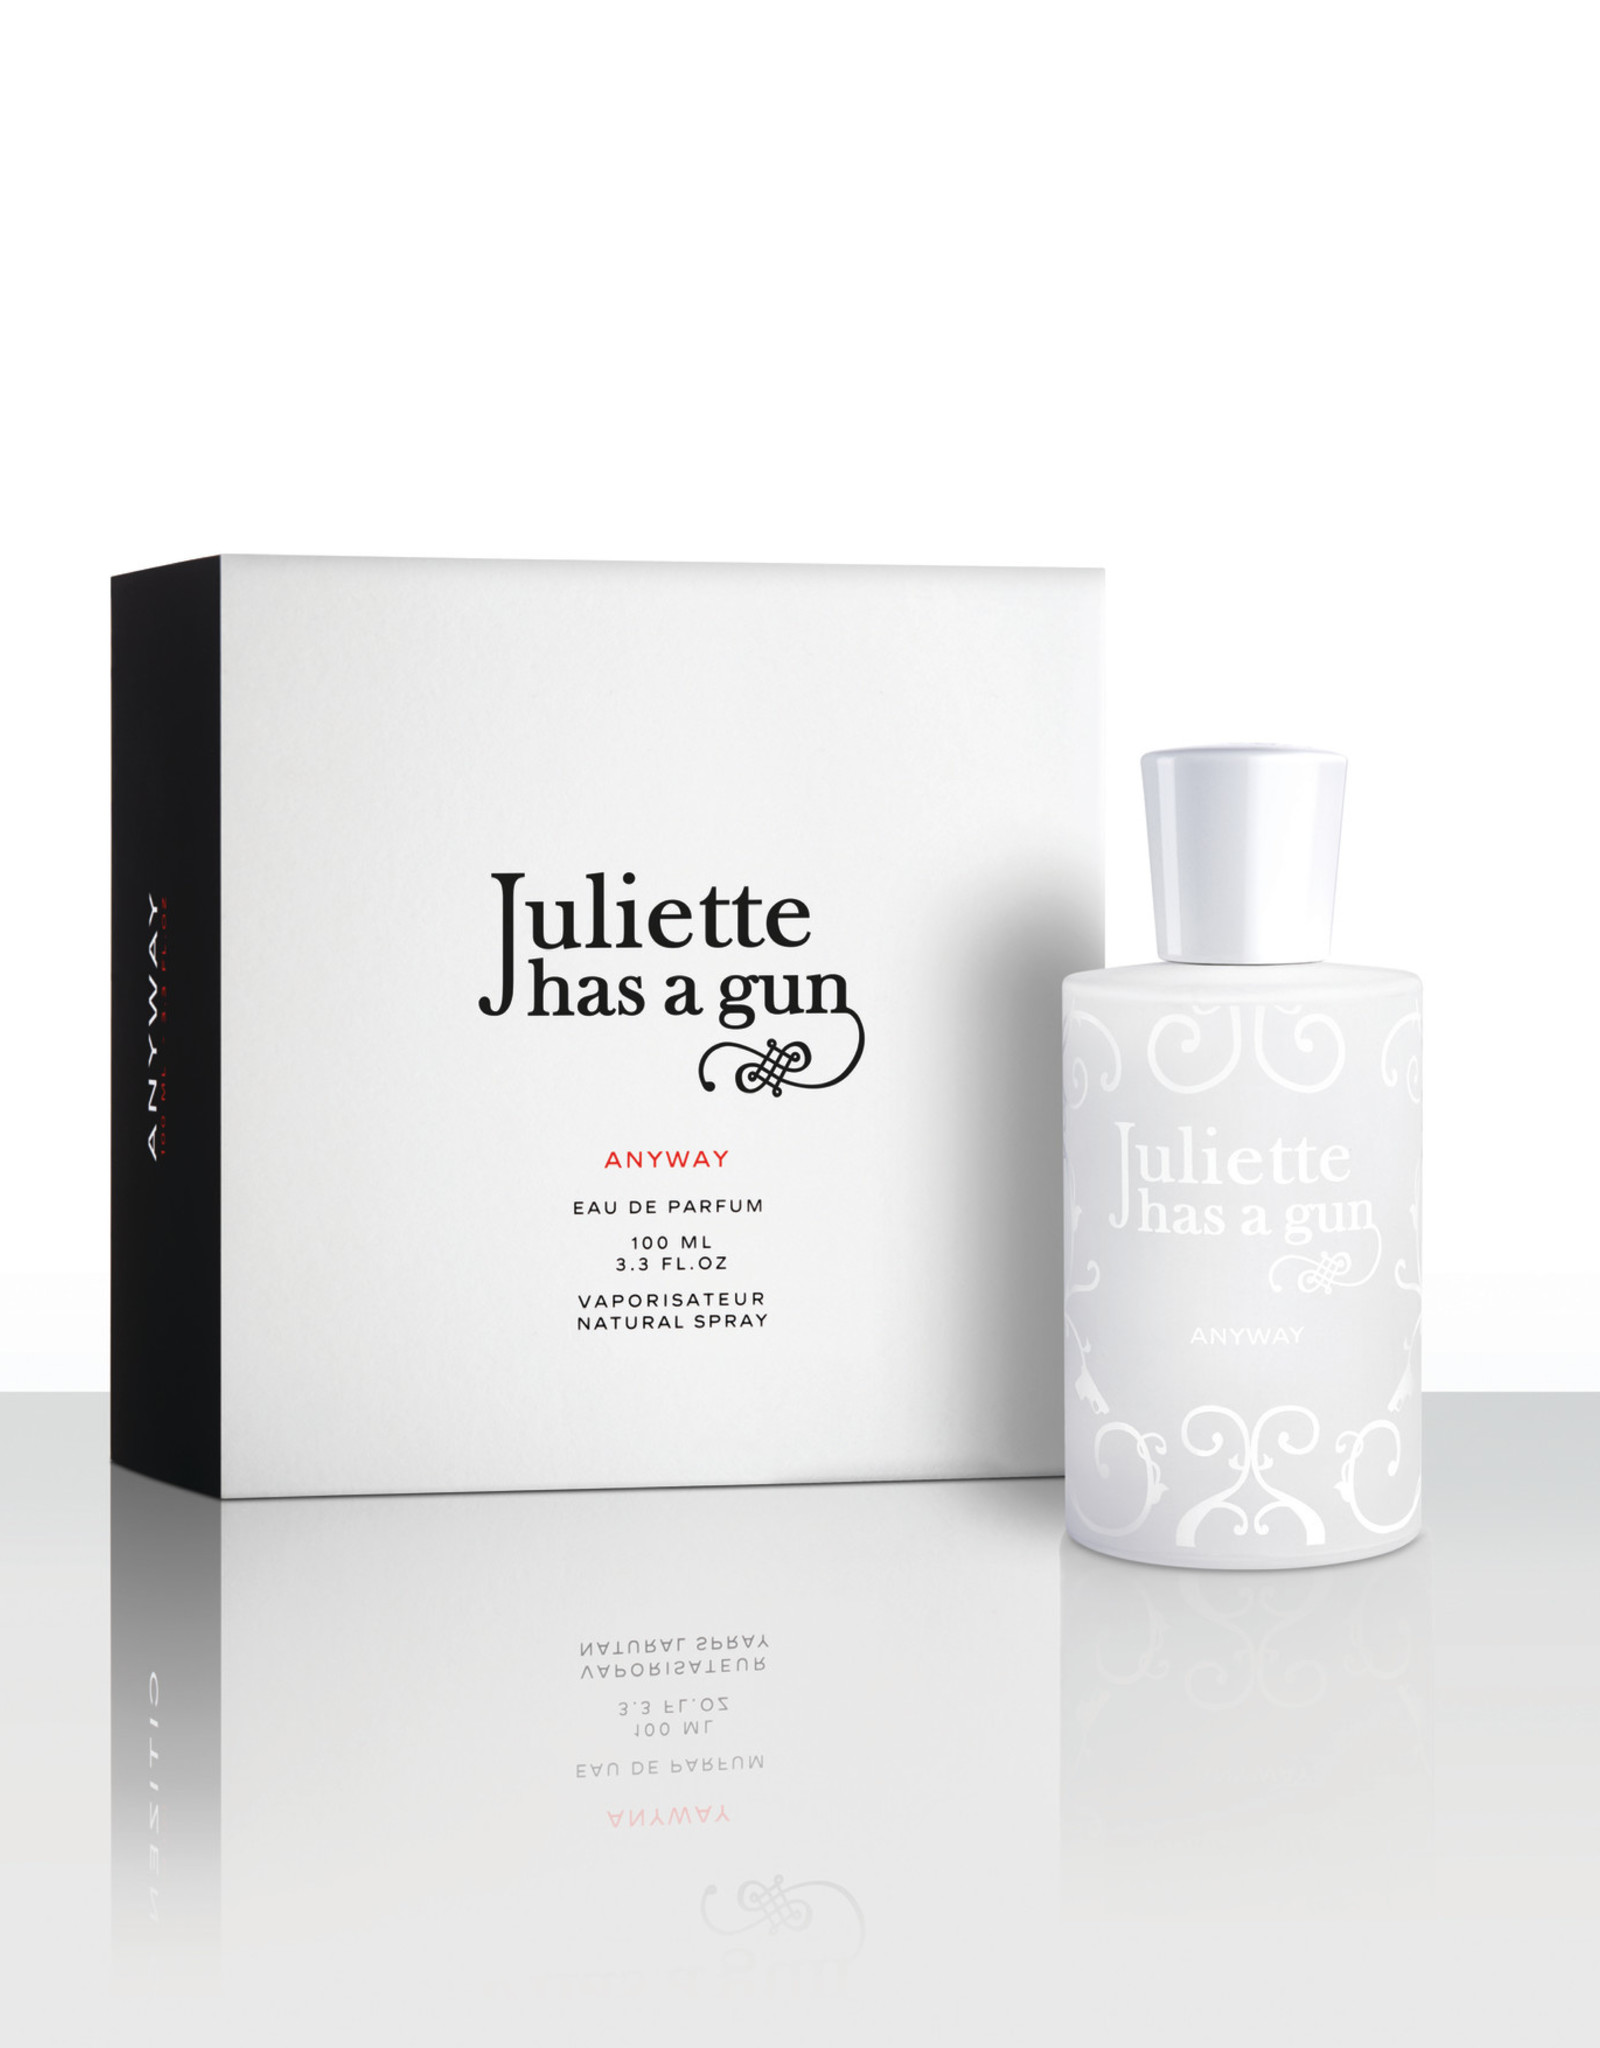 Juliette has a gun Juliette has a gun - Anyway 50ml